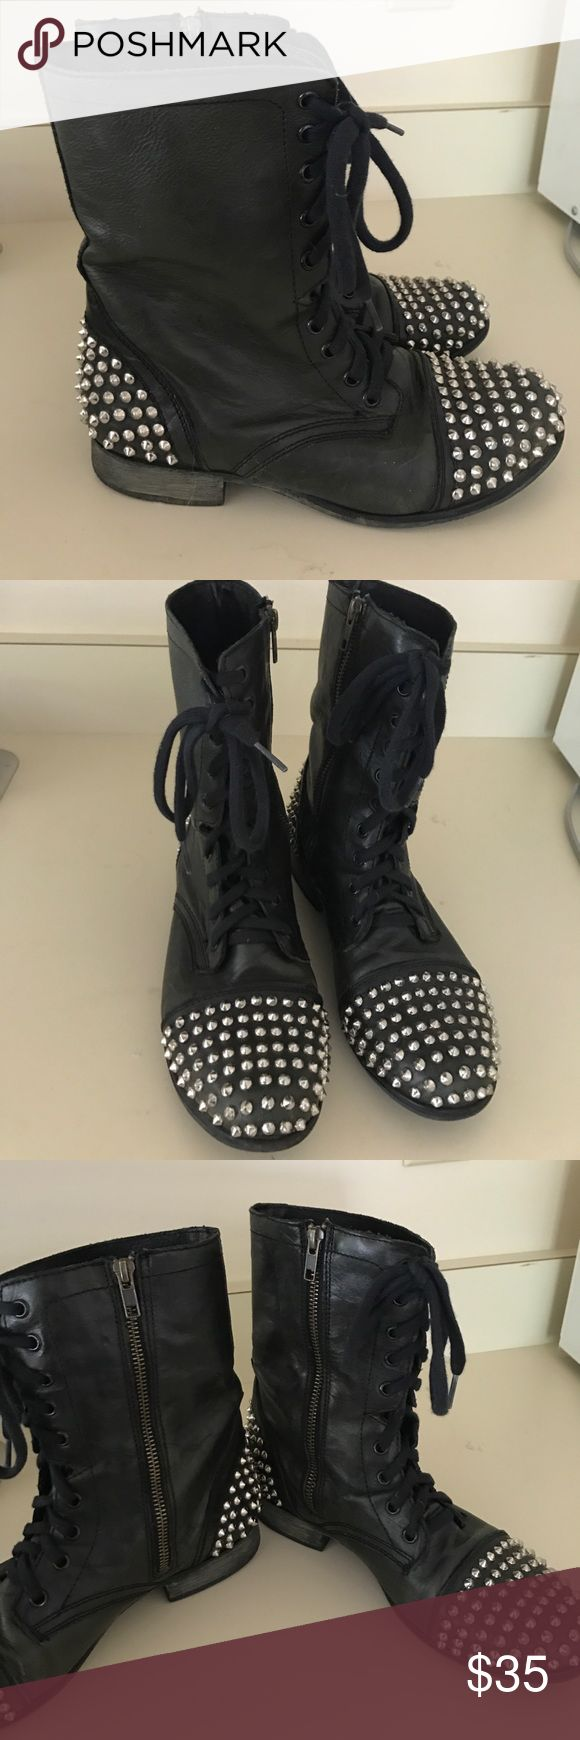 SteveMadden studded boots super cute and stylish black studded combat boots Steve Madden Shoes Combat & Moto Boots